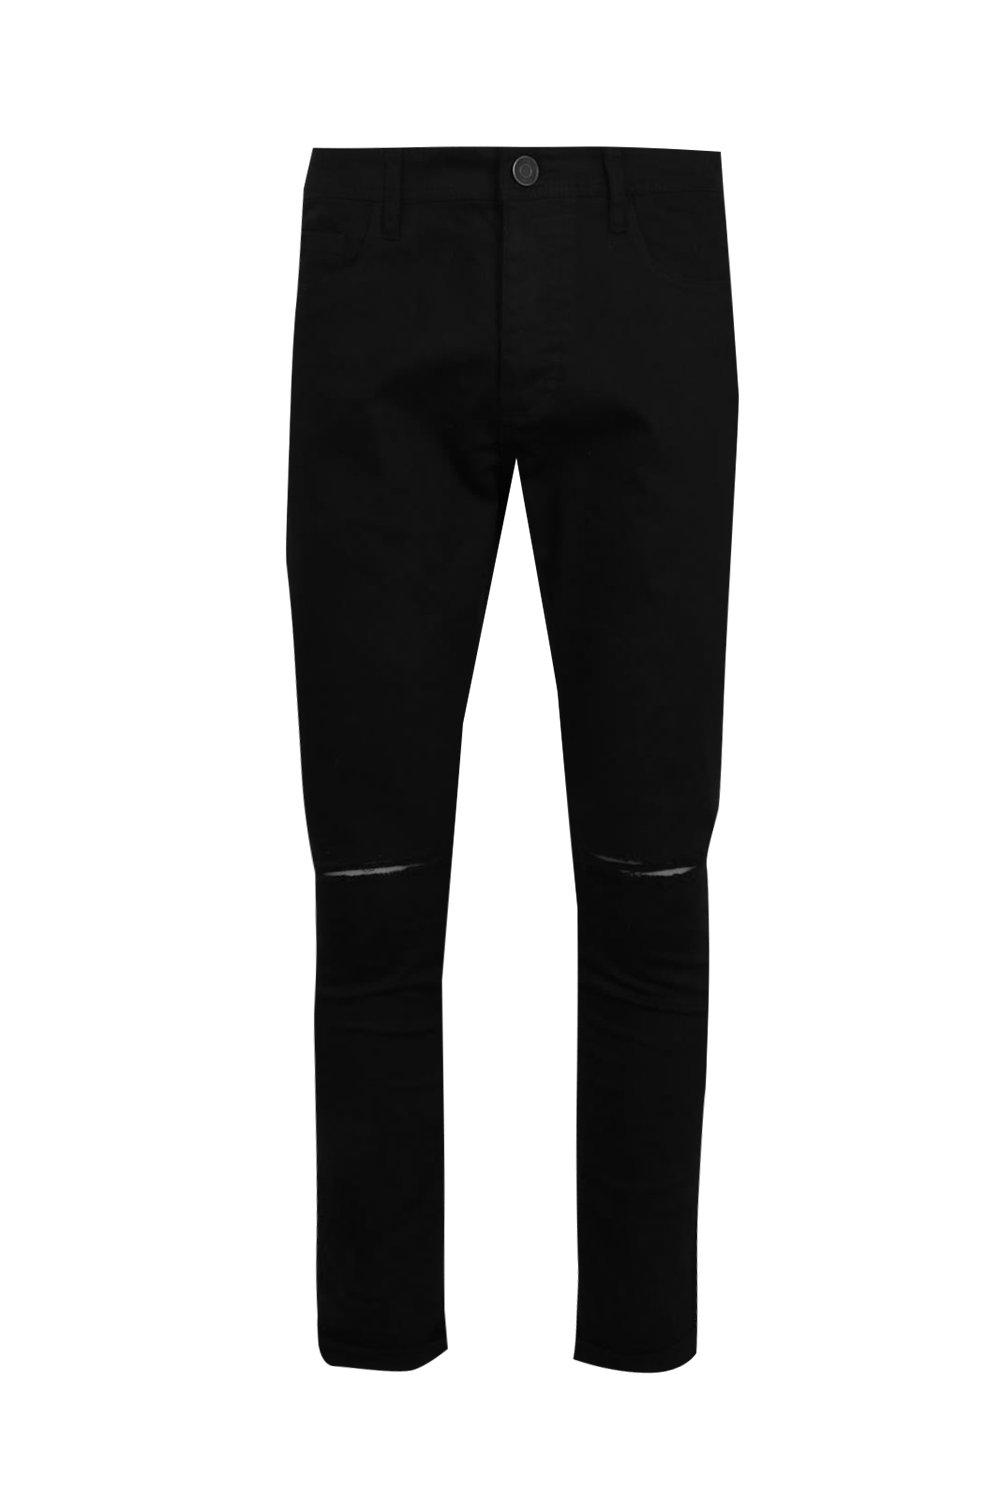 boohooMAN Black Stretch Skinny Jeans With Ripped Knees